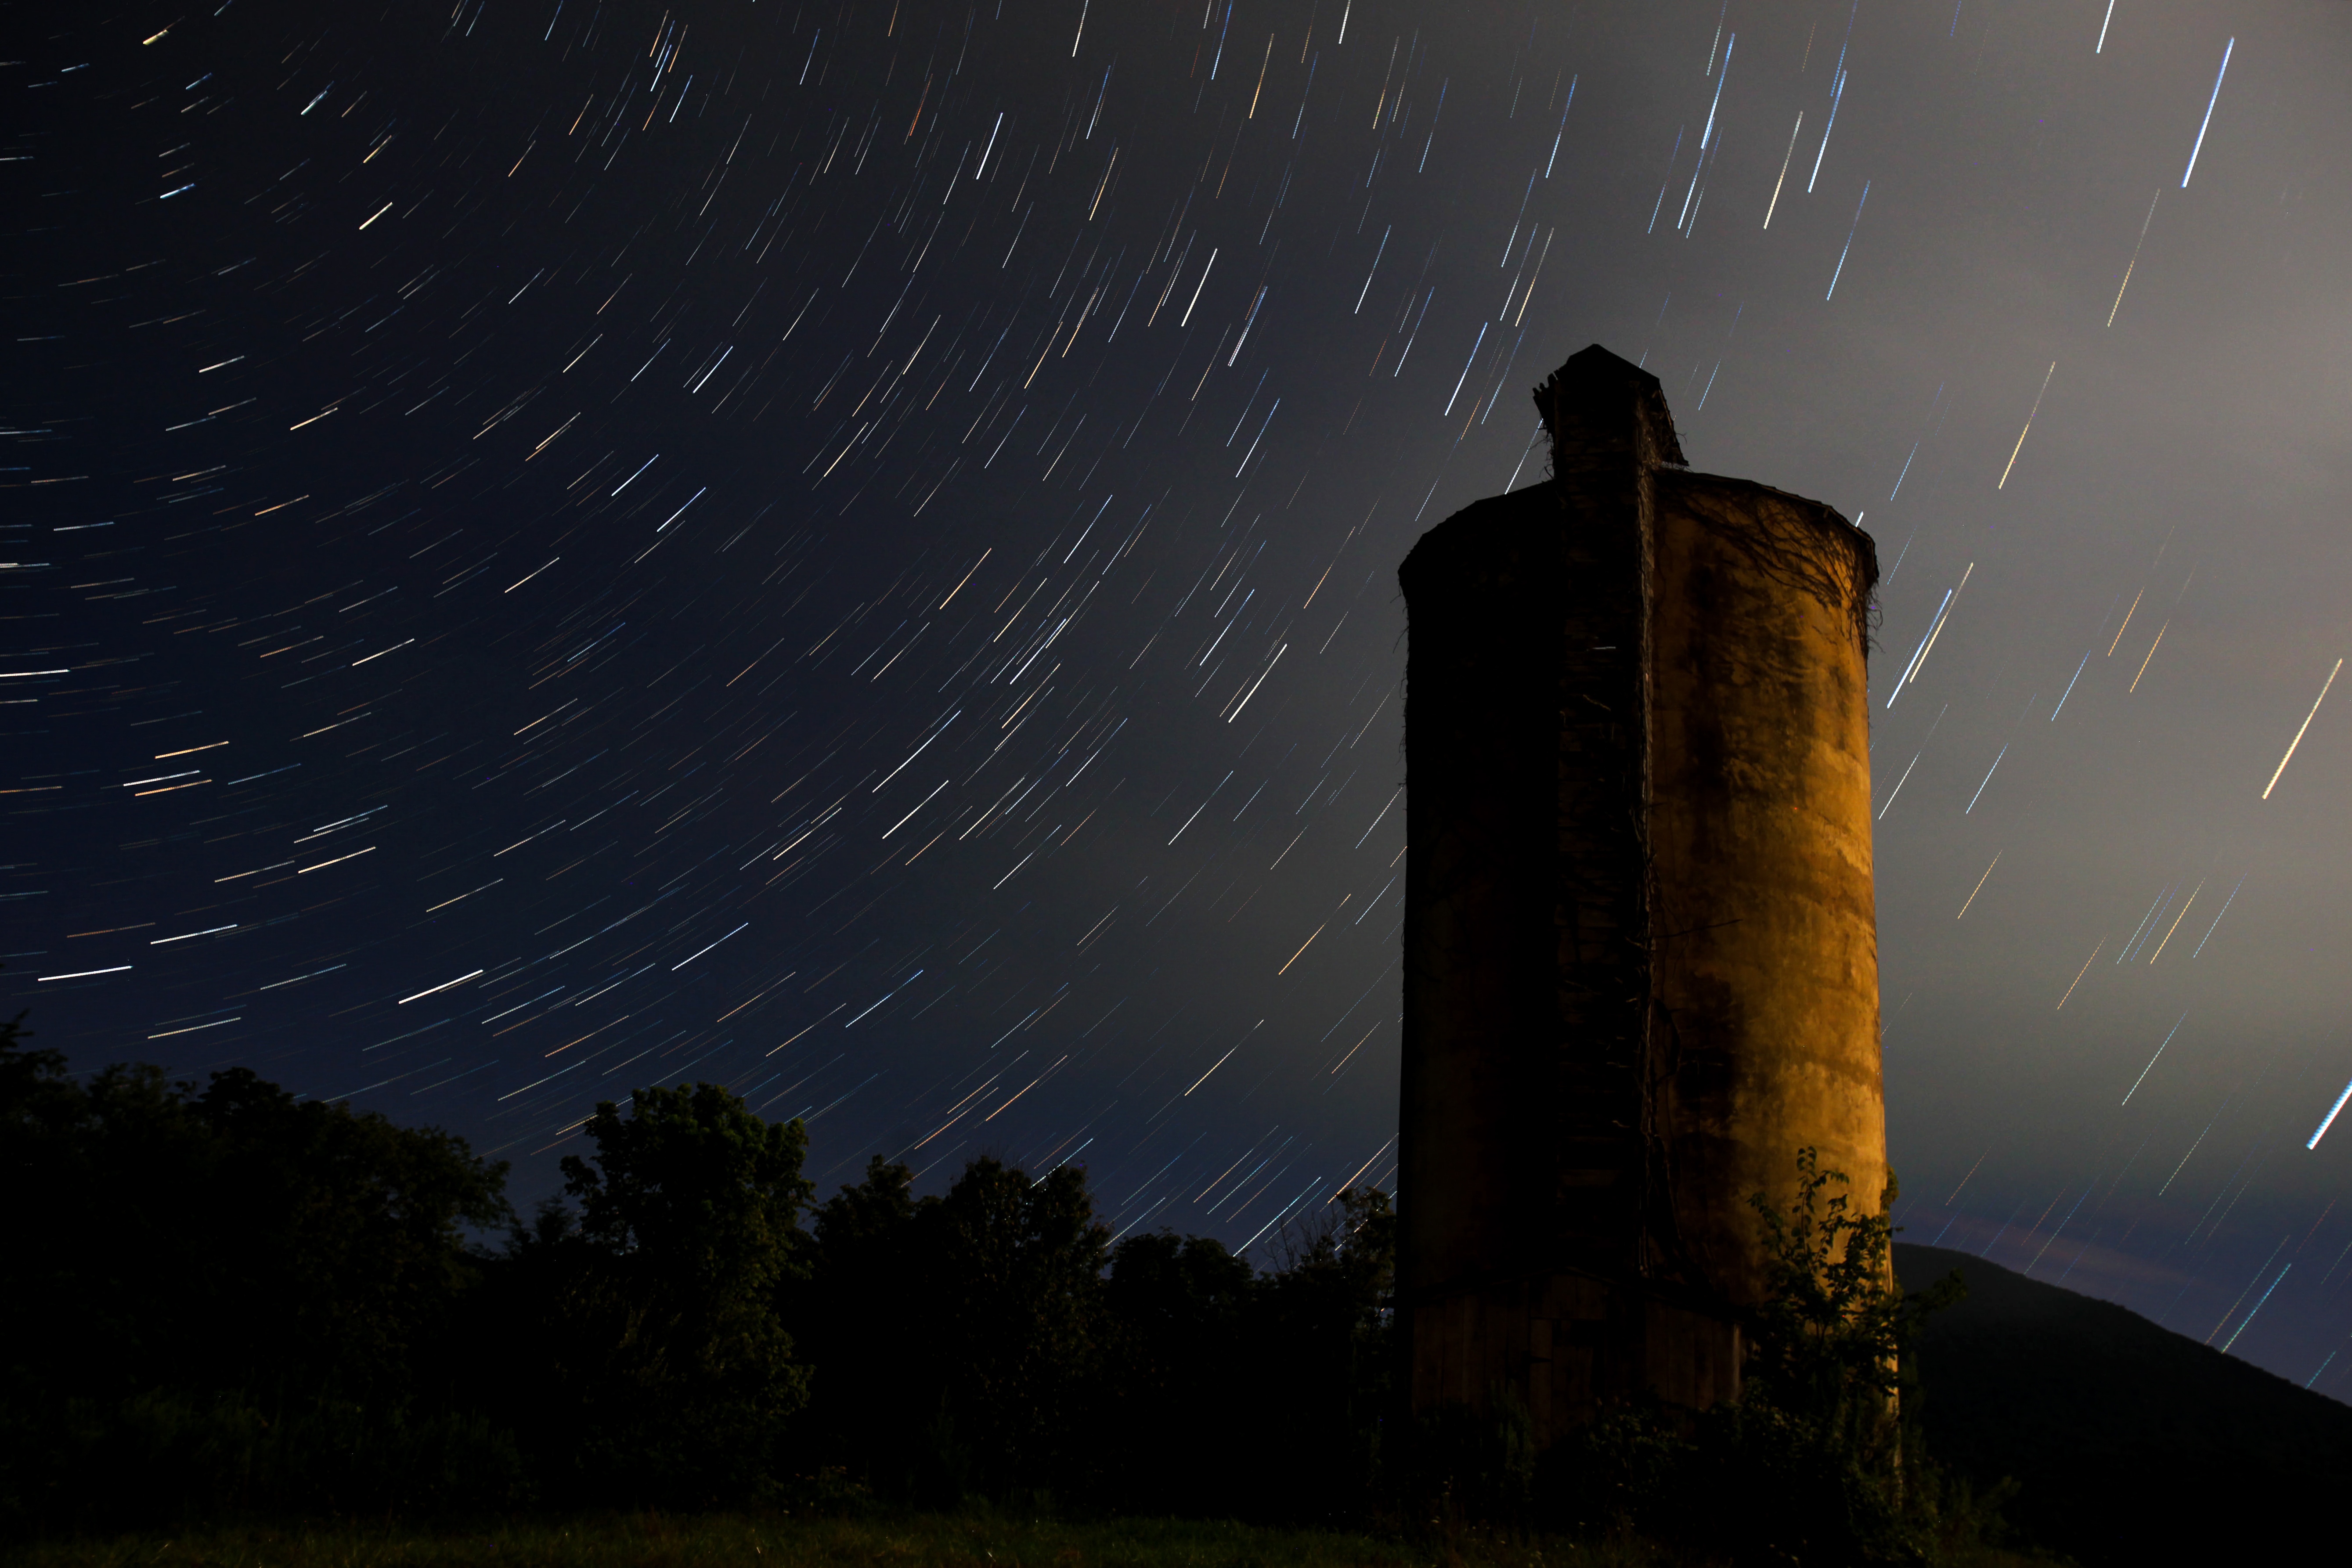 A Silo Hurdles Through the Universe